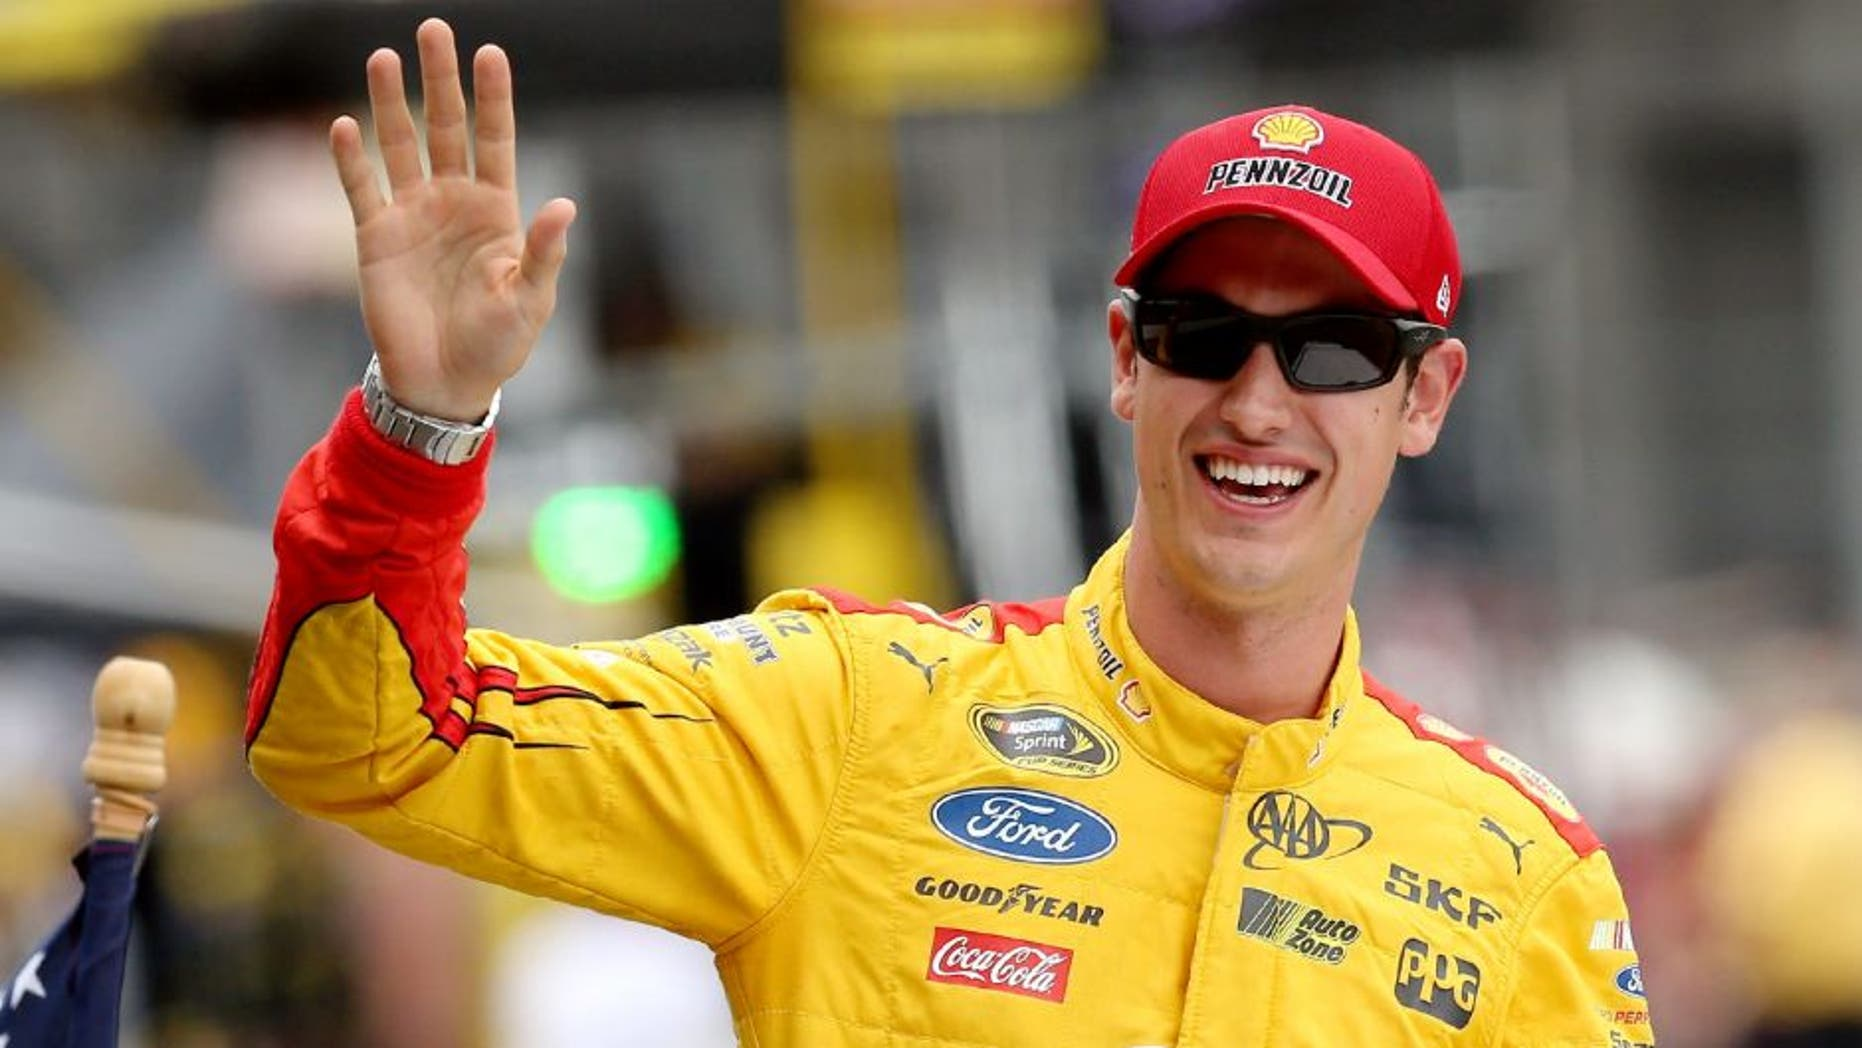 INDIANAPOLIS, IN - JULY 26: Joey Logano, driver of the #22 Shell Pennzoil Ford, waves prior to the NASCAR Sprint Cup Series Crown Royal Presents the Jeff Kyle 400 at the Brickyard at Indianapolis Motor Speedway on July 26, 2015 in Indianapolis, Indiana. (Photo by Andy Lyons/Getty Images)